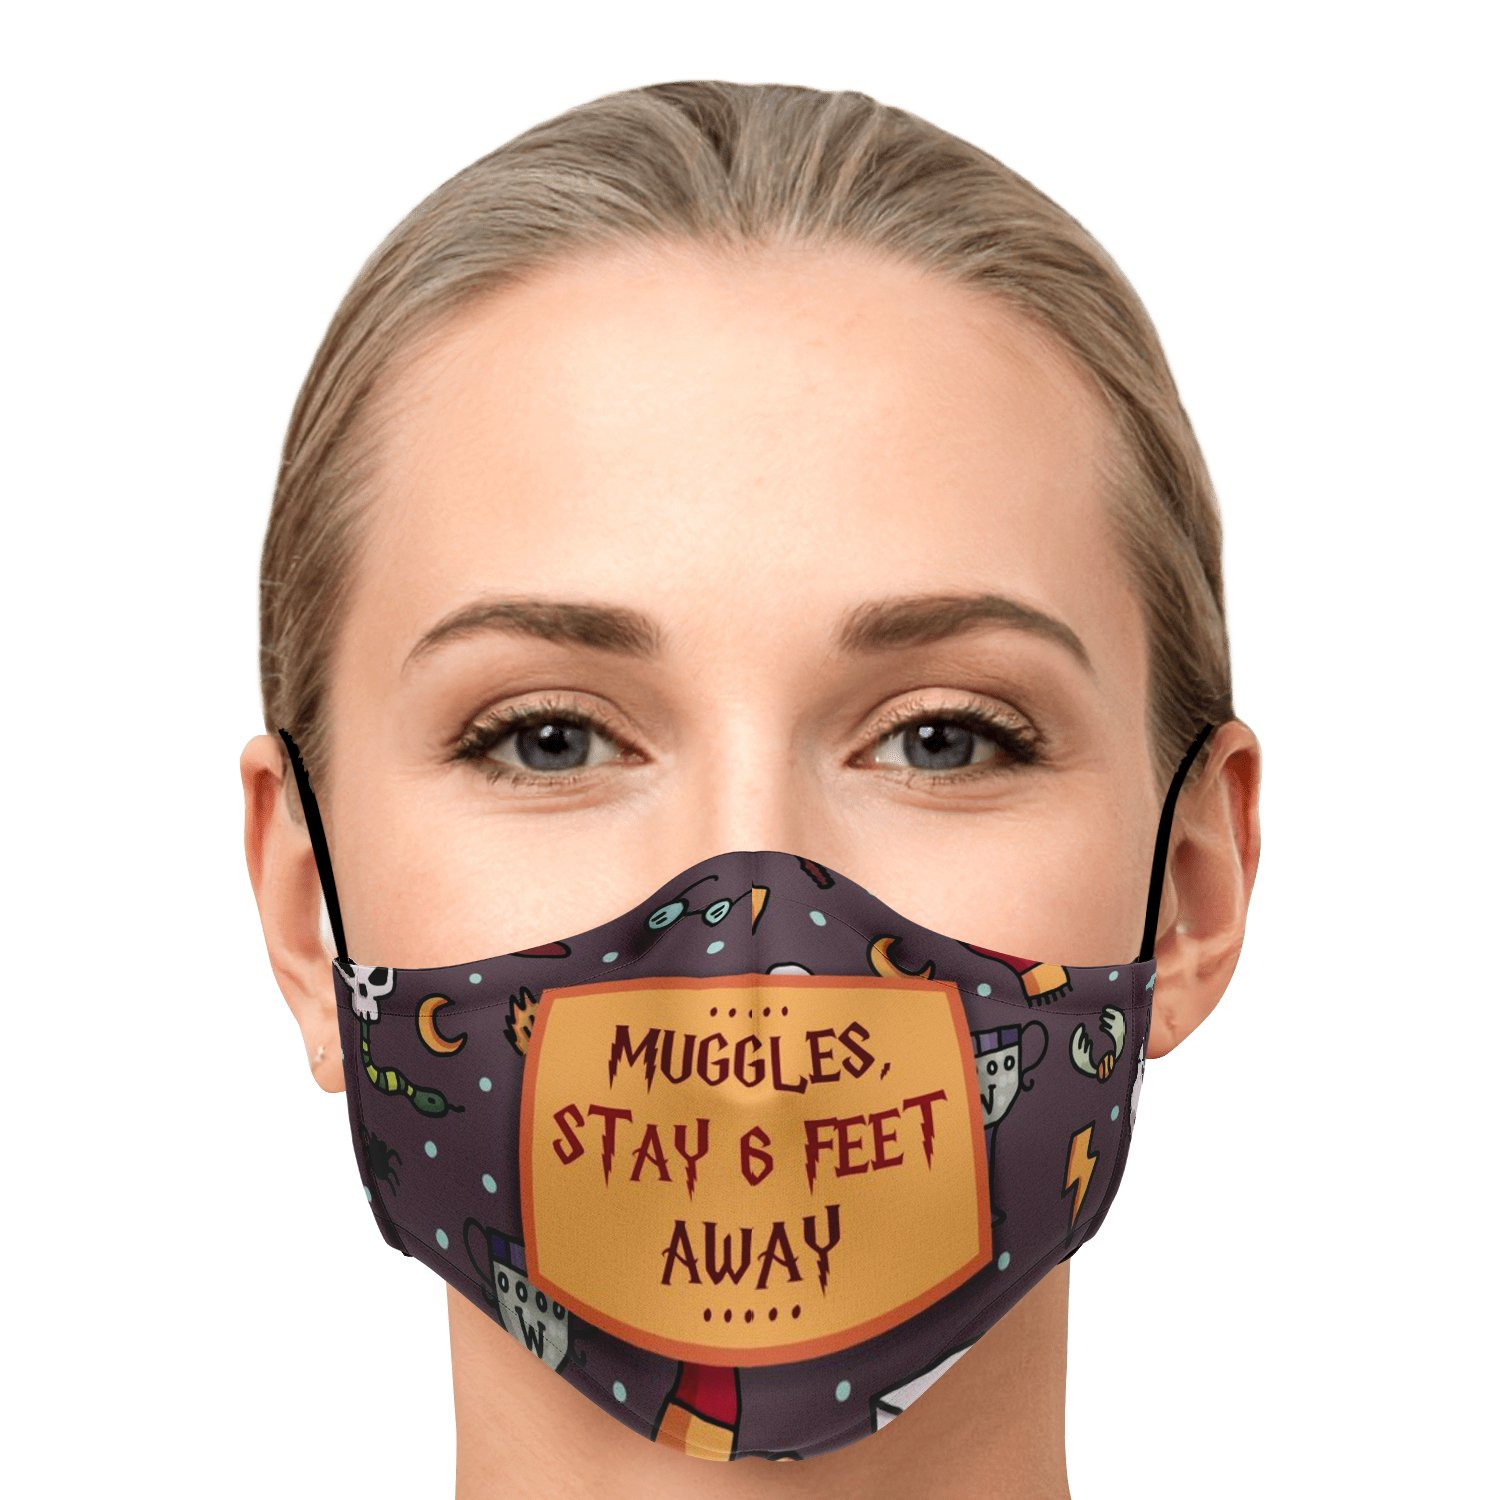 Muggles Stay 6 Feet Away Harry Potter Face Mask 1